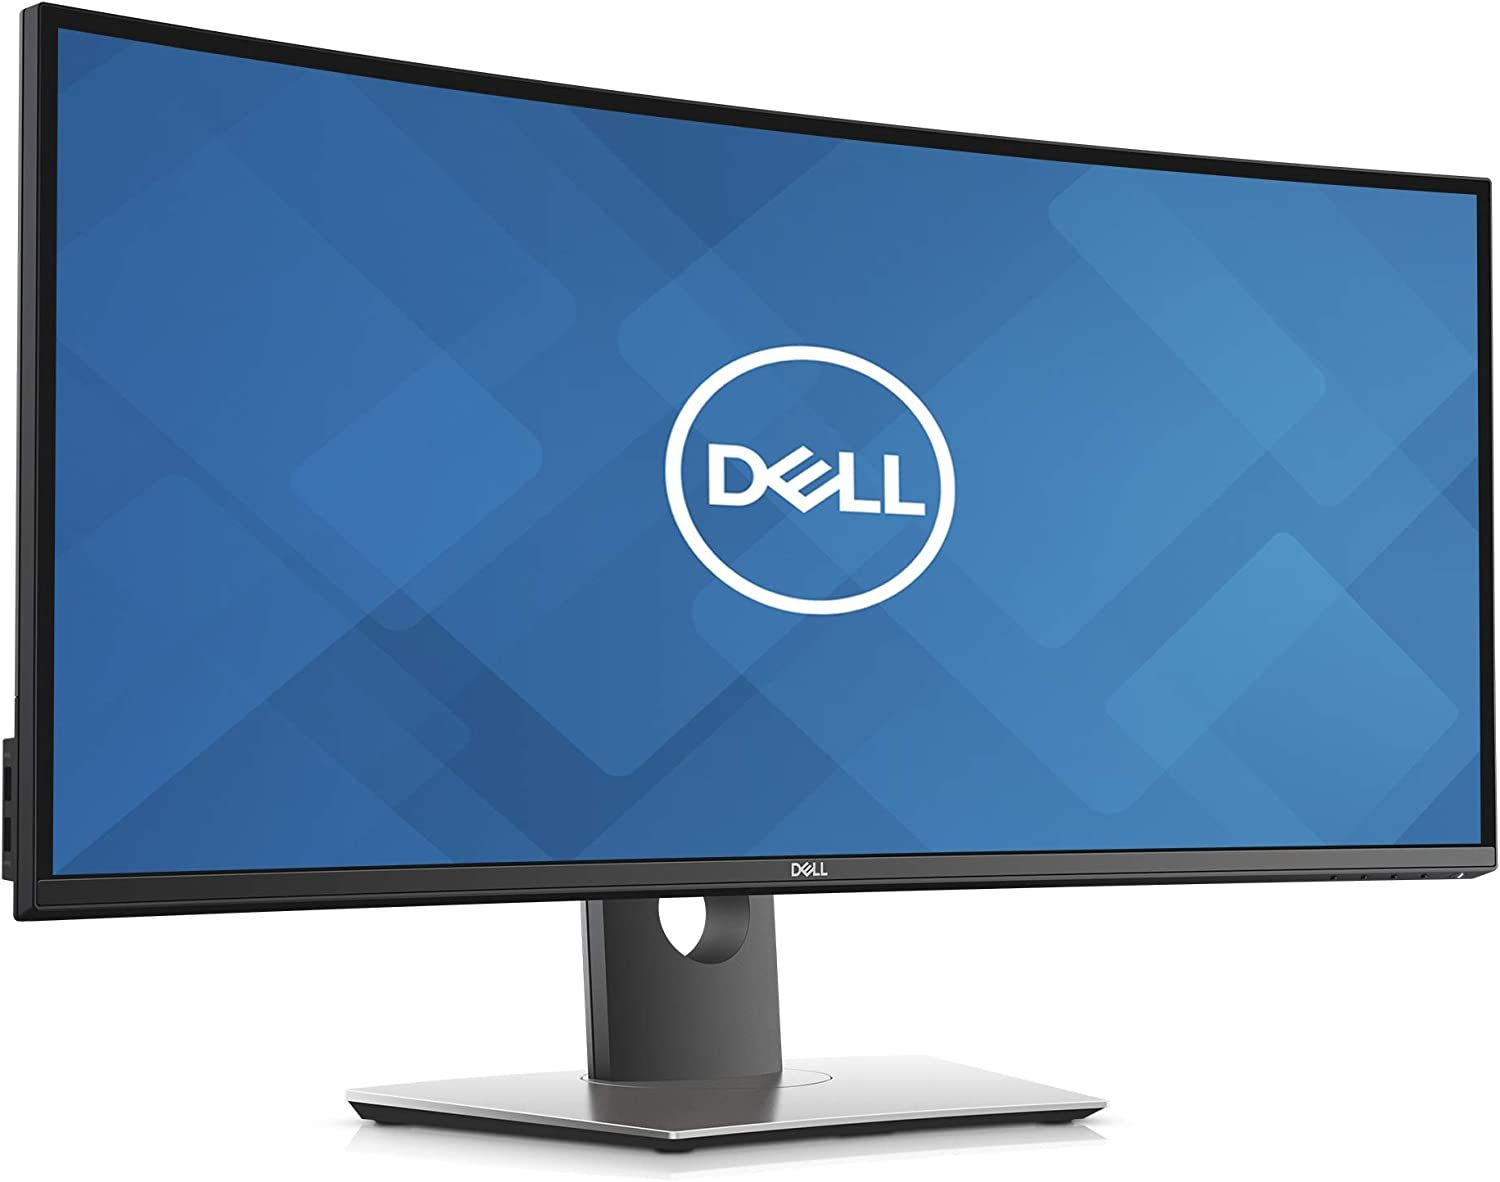 Dell U3419w Ultrasharp 34-Inch